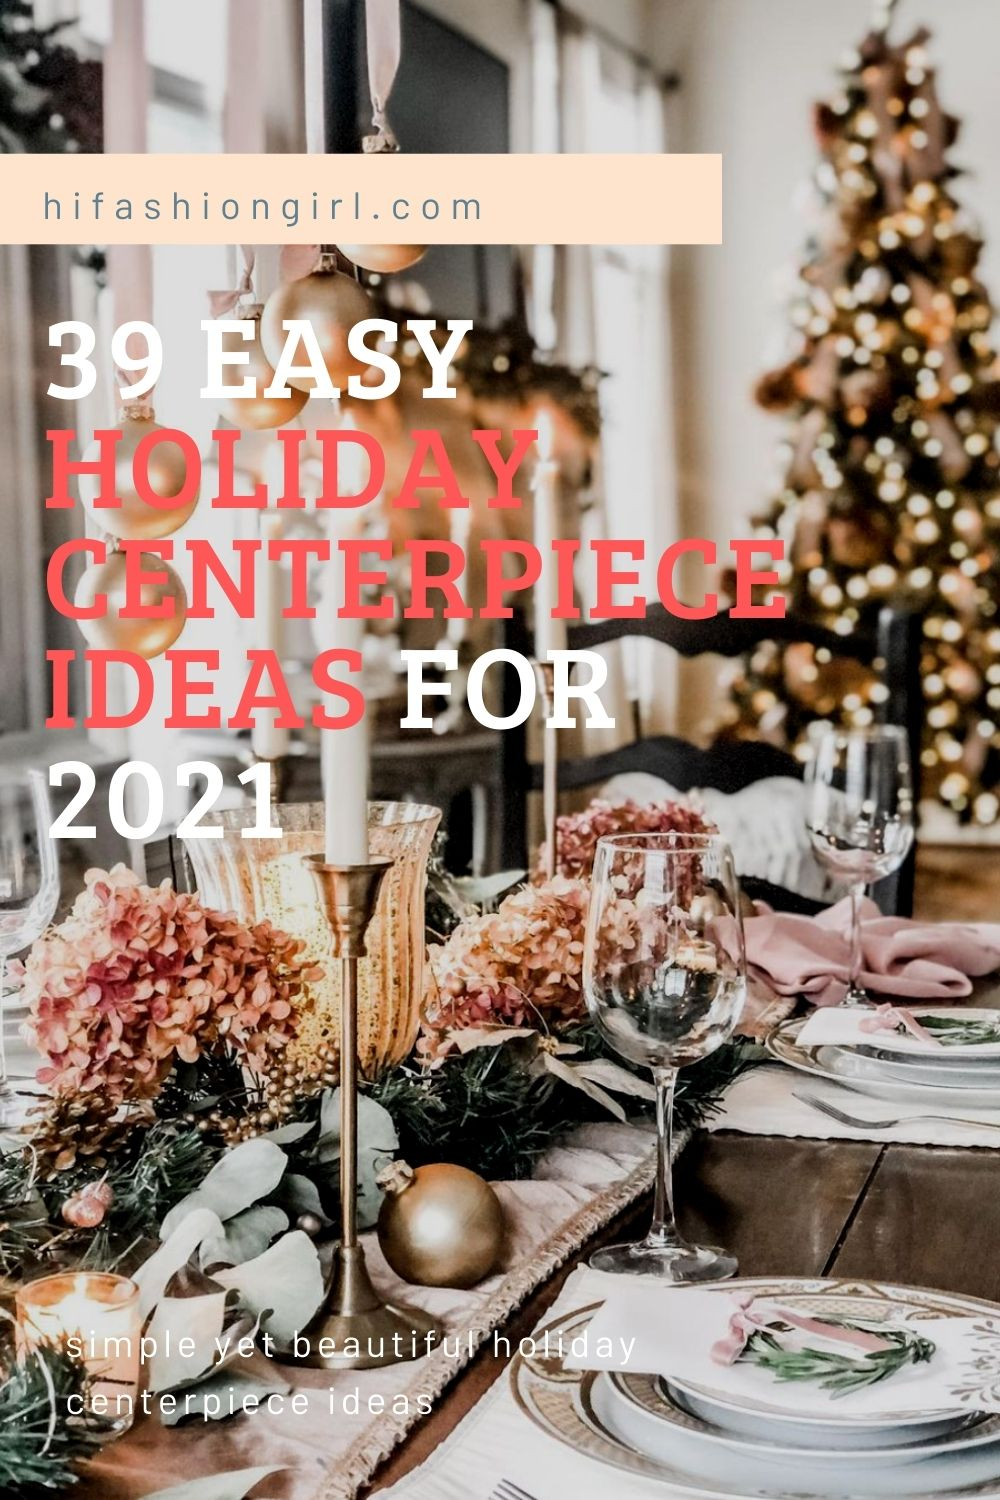 9 Creative Holiday centerpiece ideas and decorations 2021 Christmas